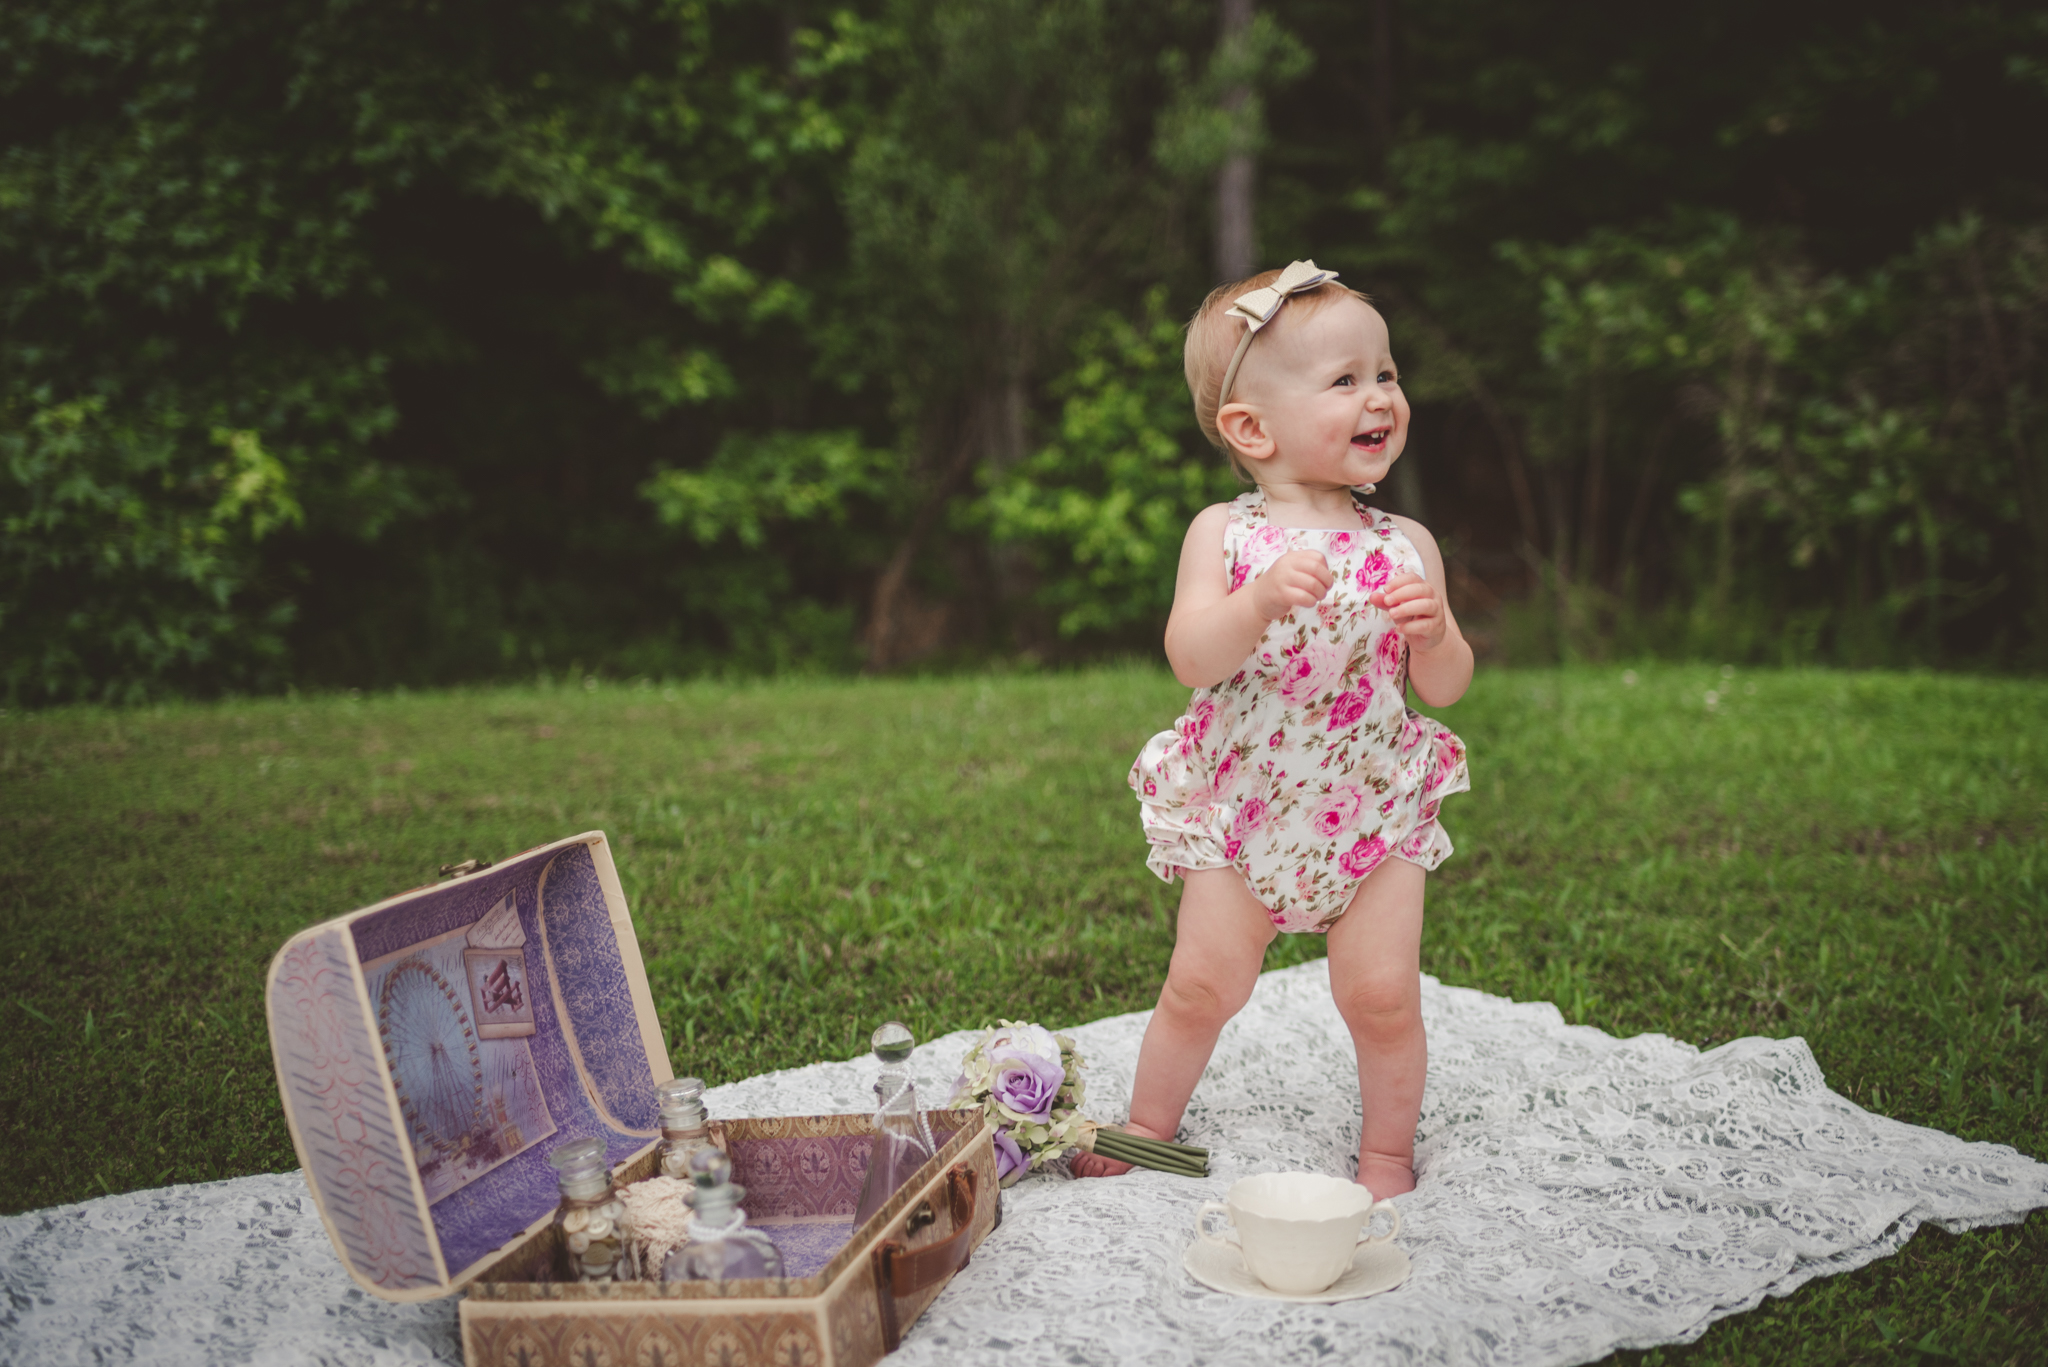 This little girl just starting learning to stand on her own on her first birthday in Rolesville, North Carolina, image taken by Rose Trail Images.